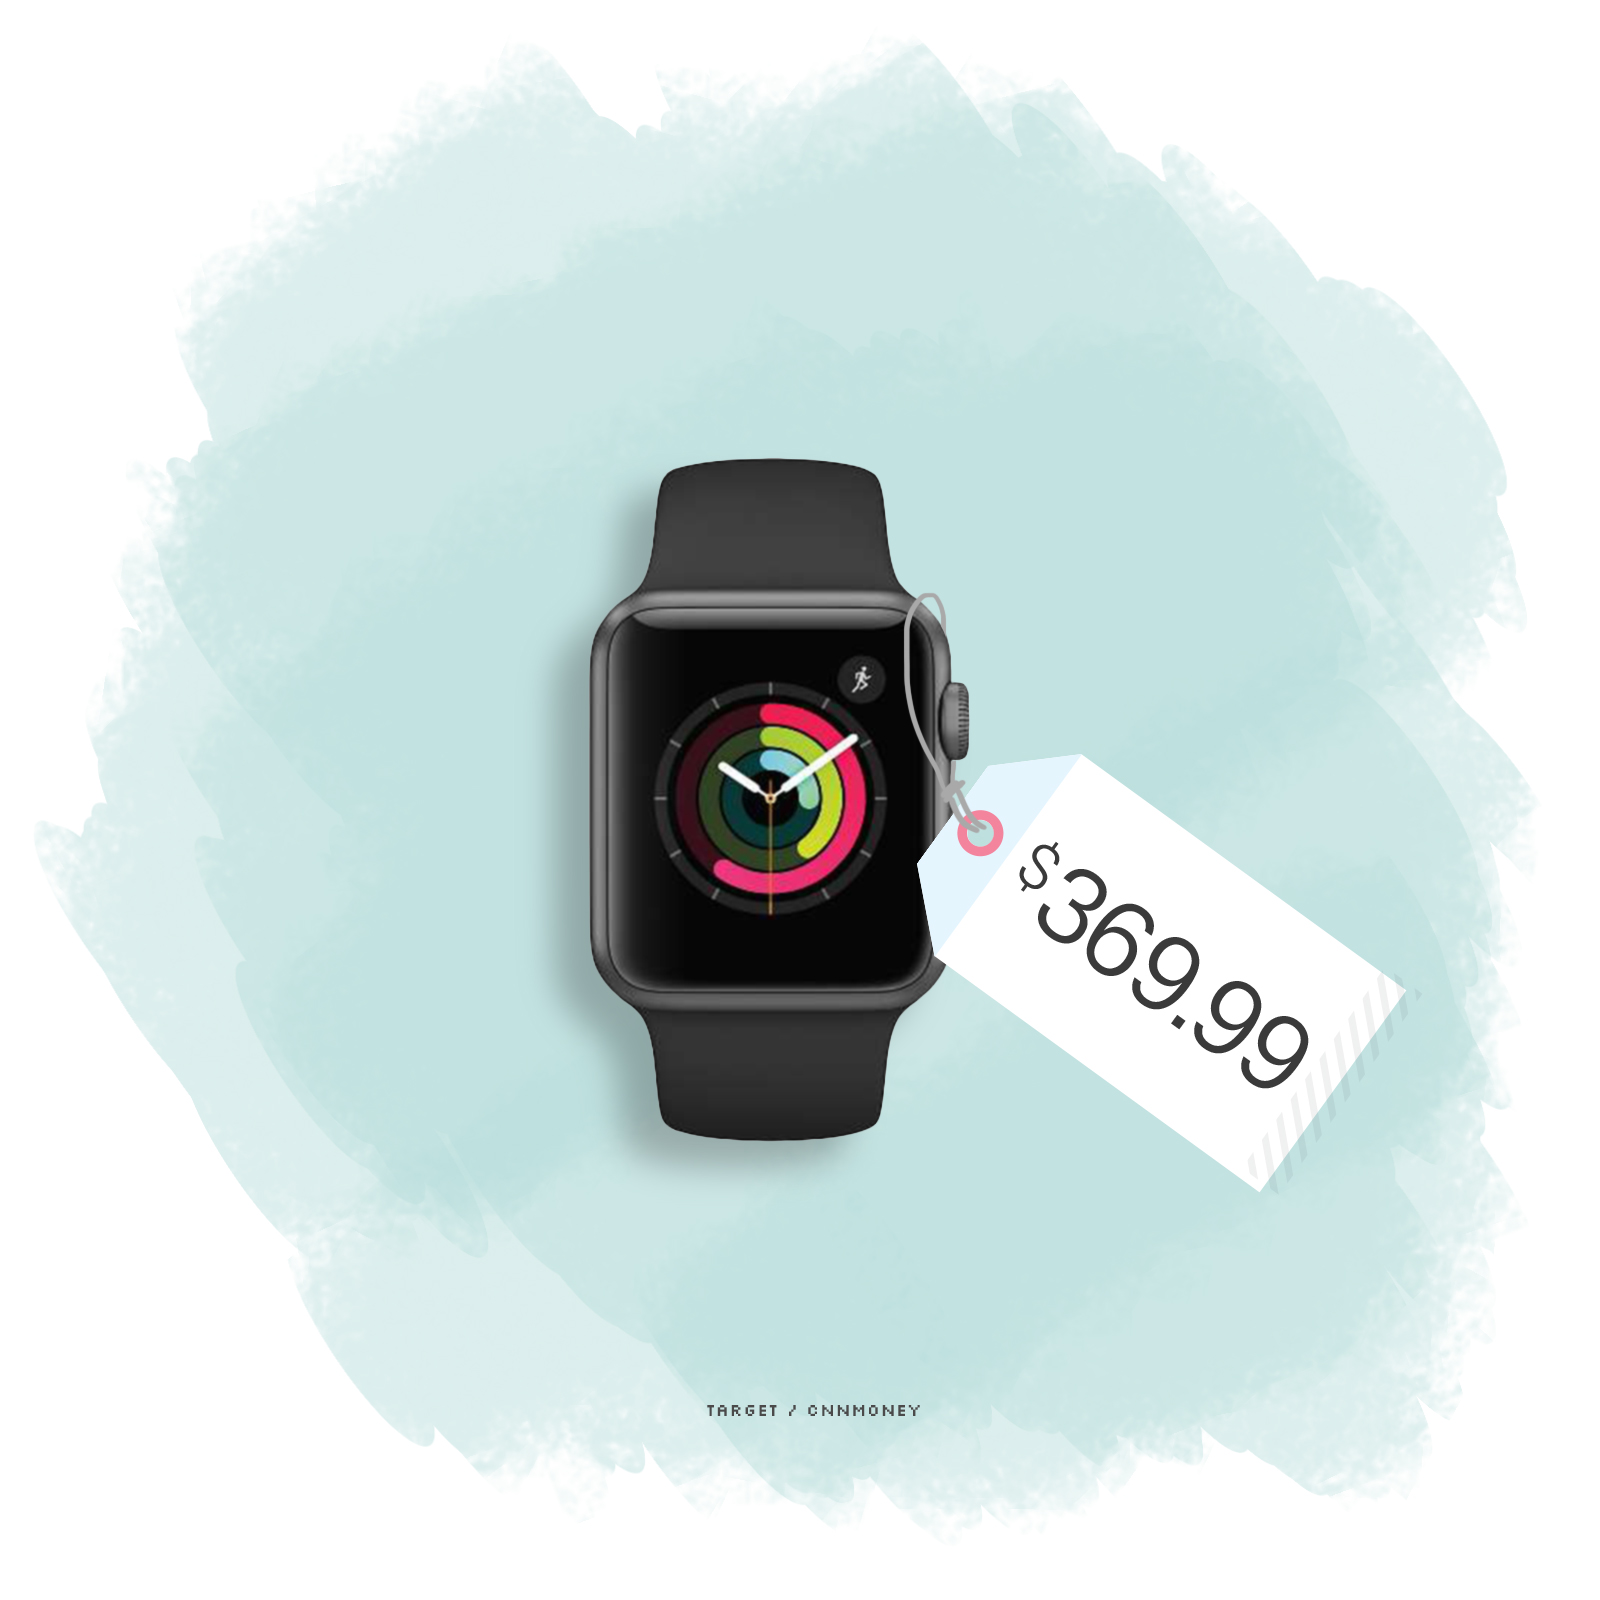 Black friday sales deal or no deal cnnmoney apple watch series 2 at target biocorpaavc